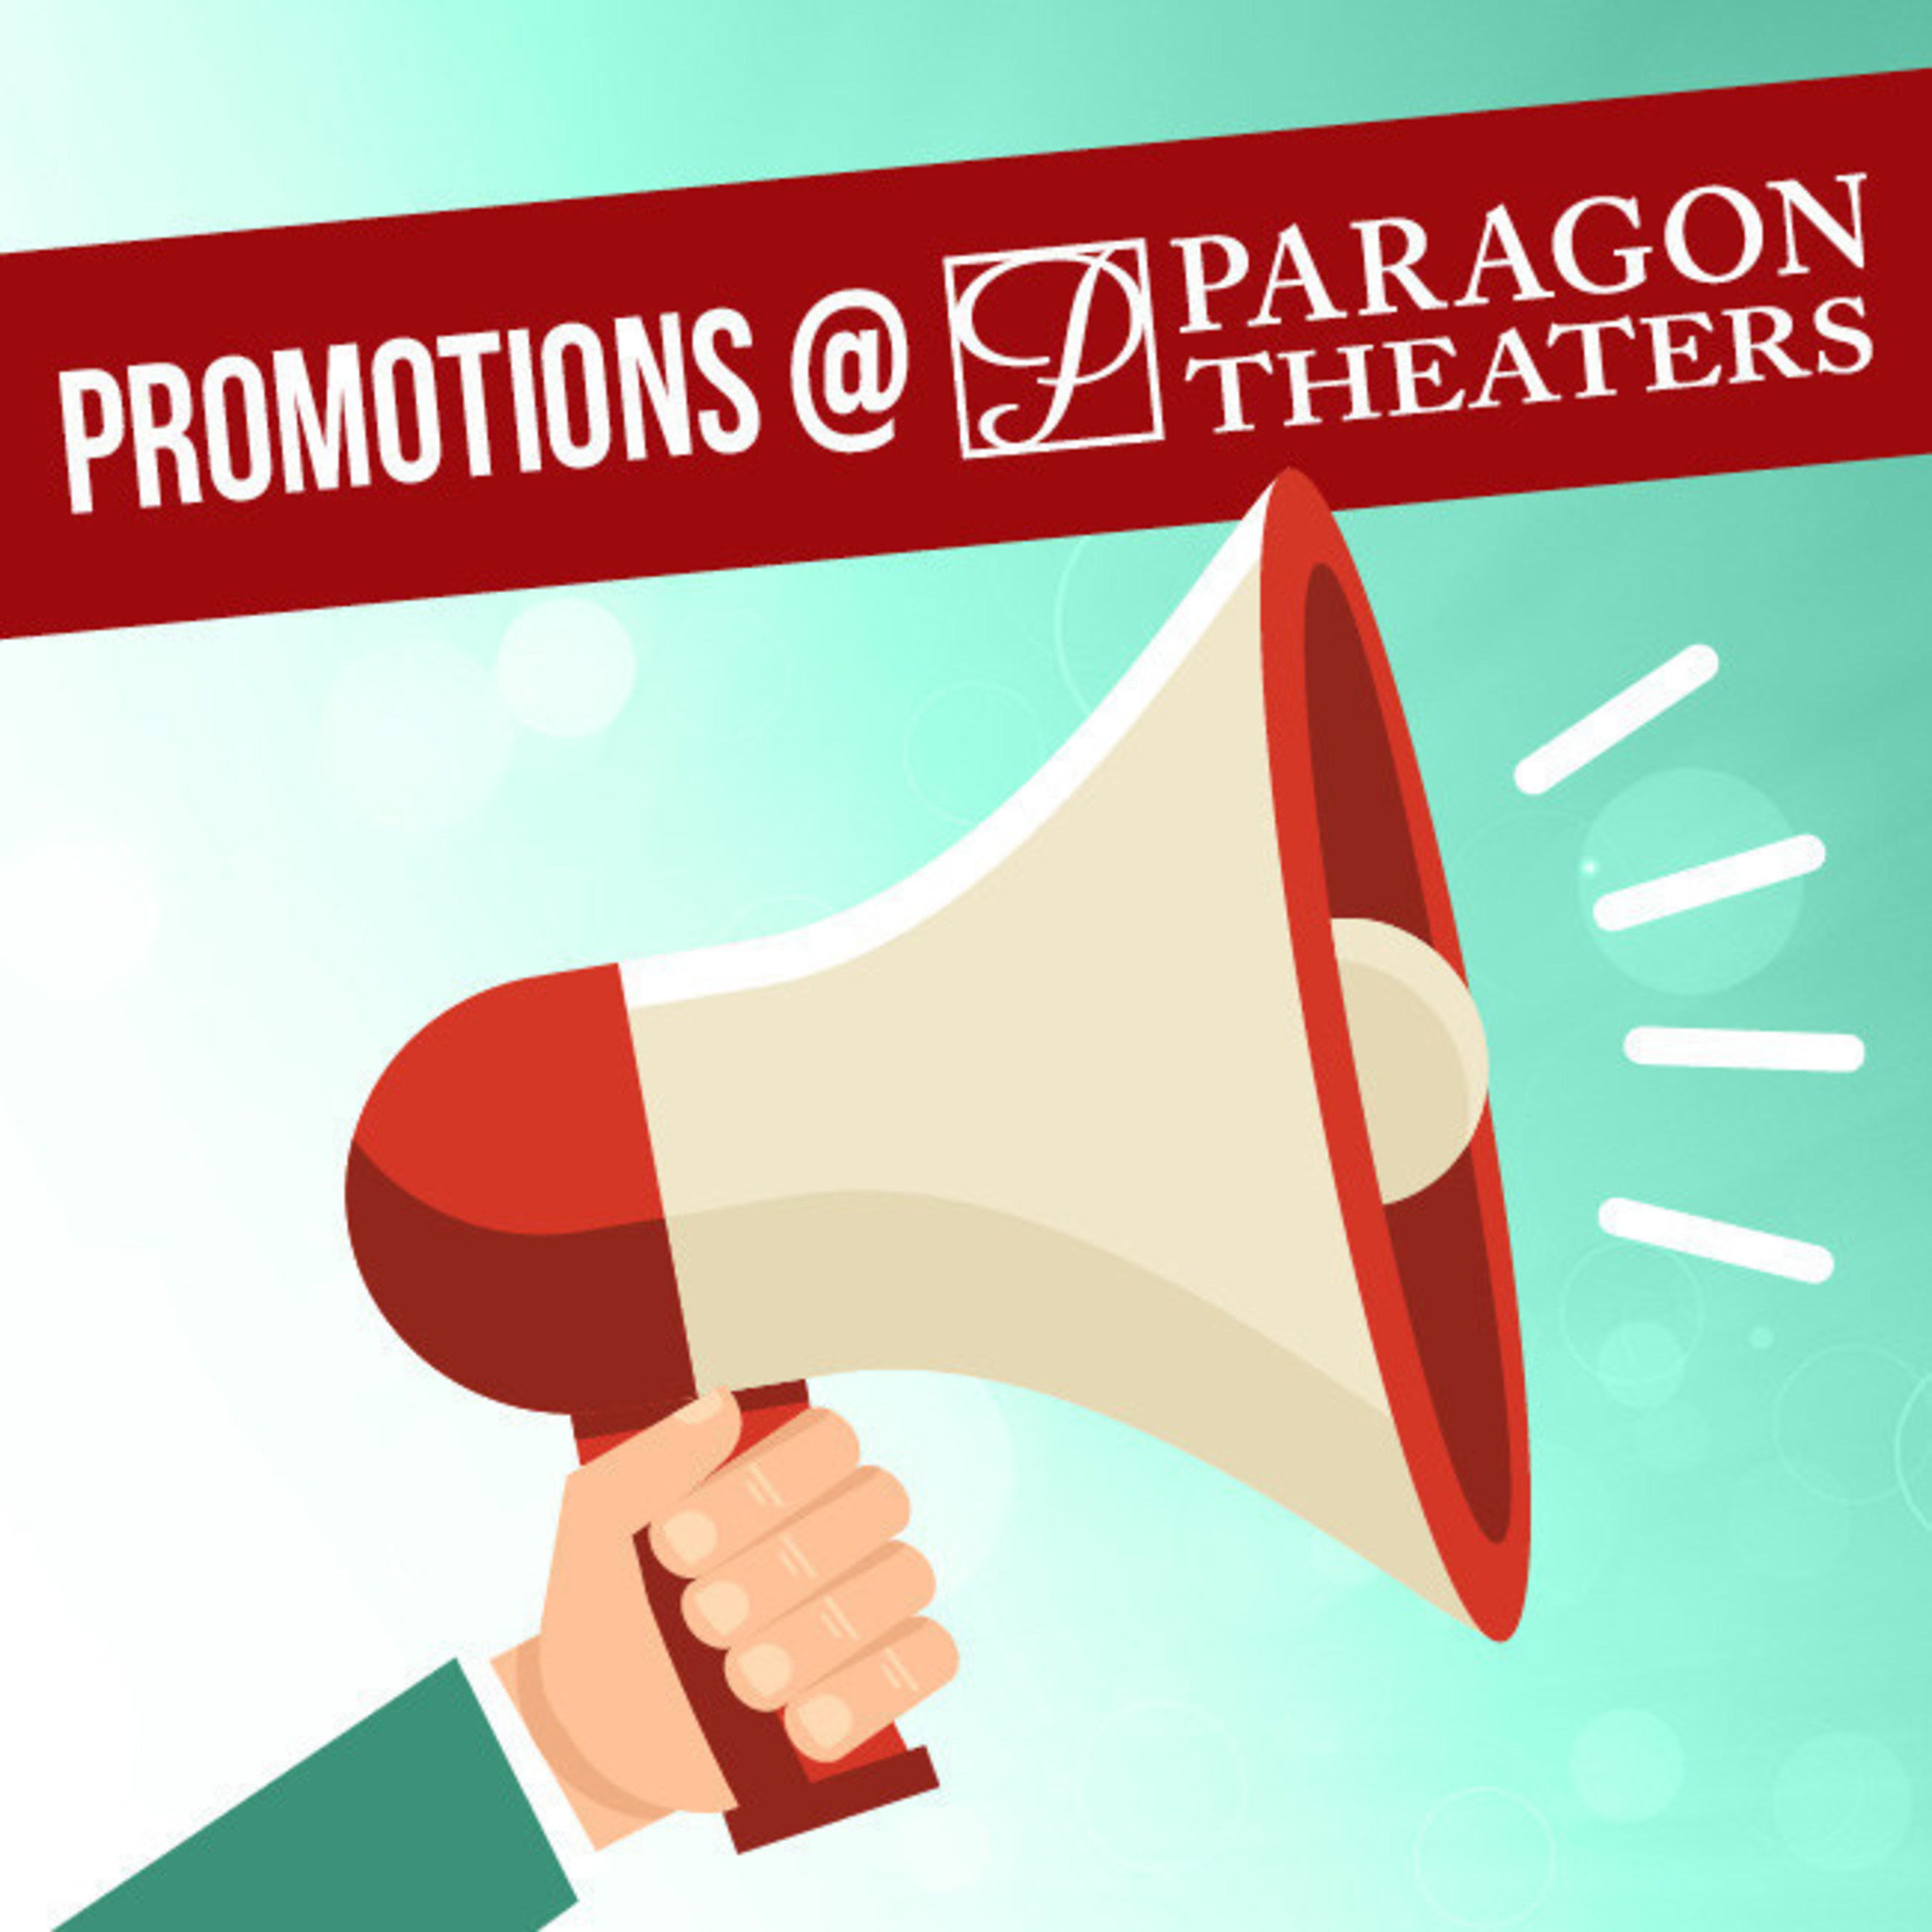 Paragon Theaters Offering Exciting Fall Promotions, Contest And A Breast Cancer Fundraiser